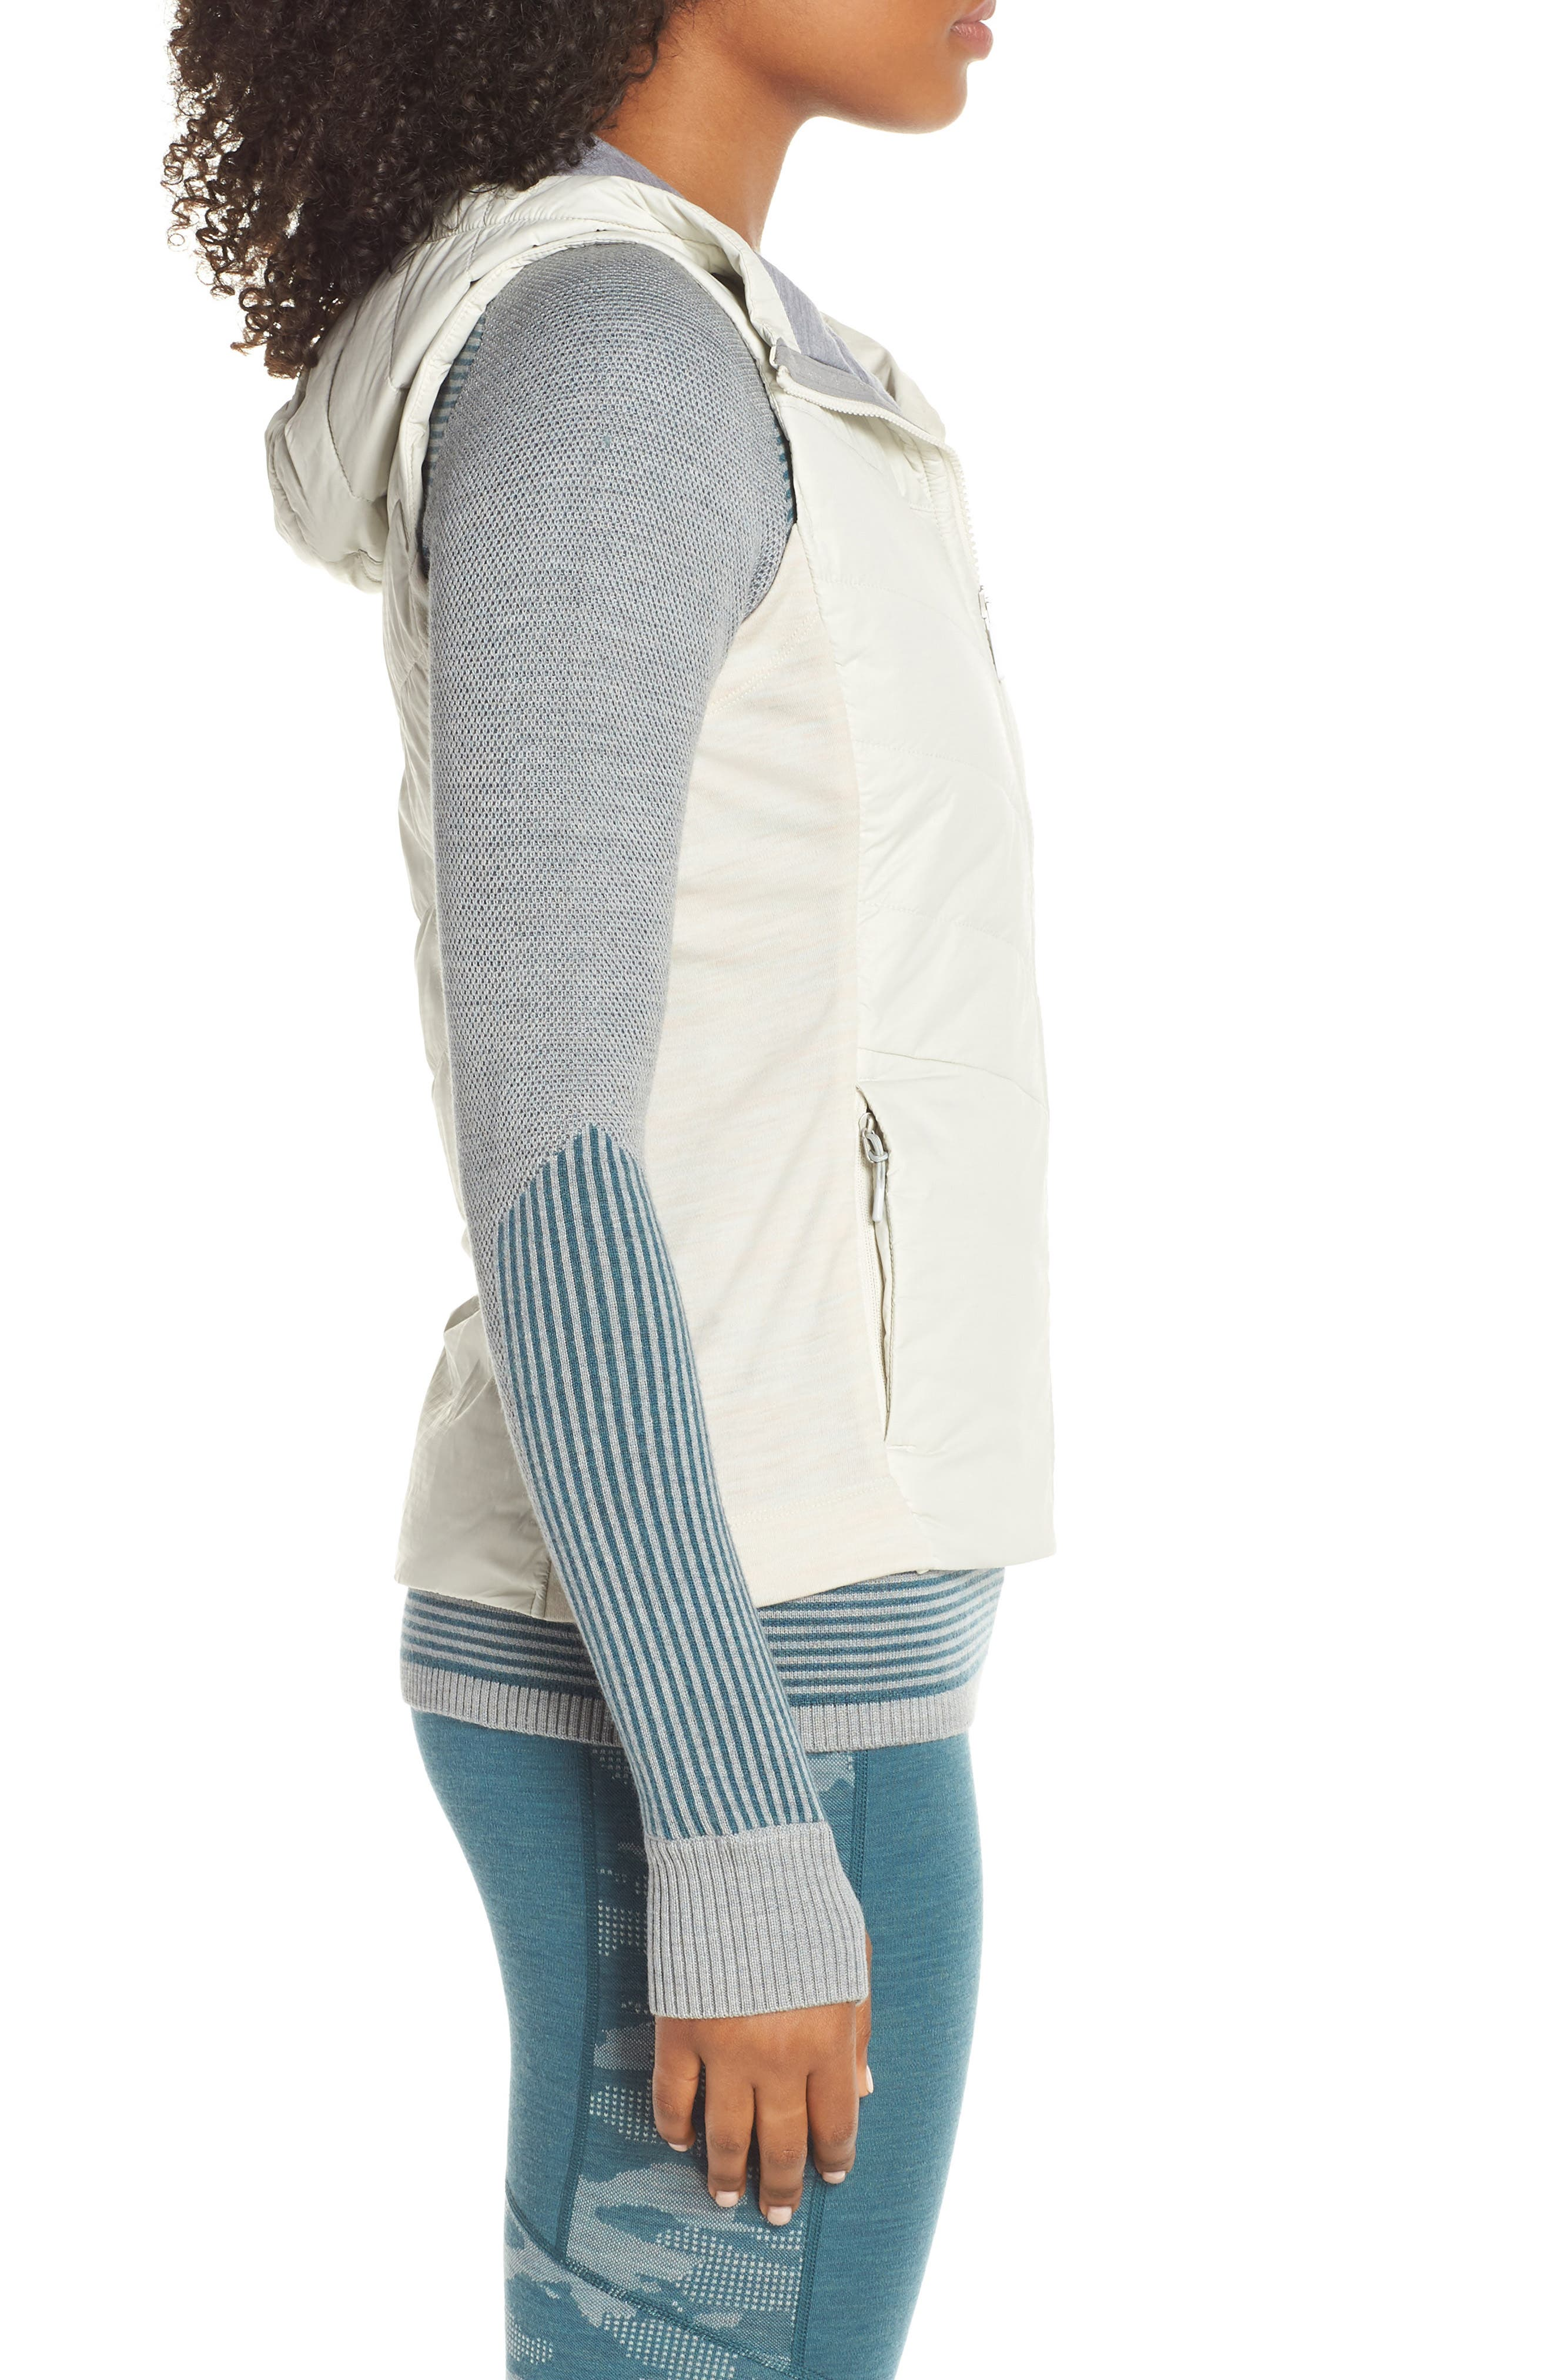 Smartloft 60 Insulated Hooded Vest,                             Alternate thumbnail 3, color,                             SILVER BIRCH